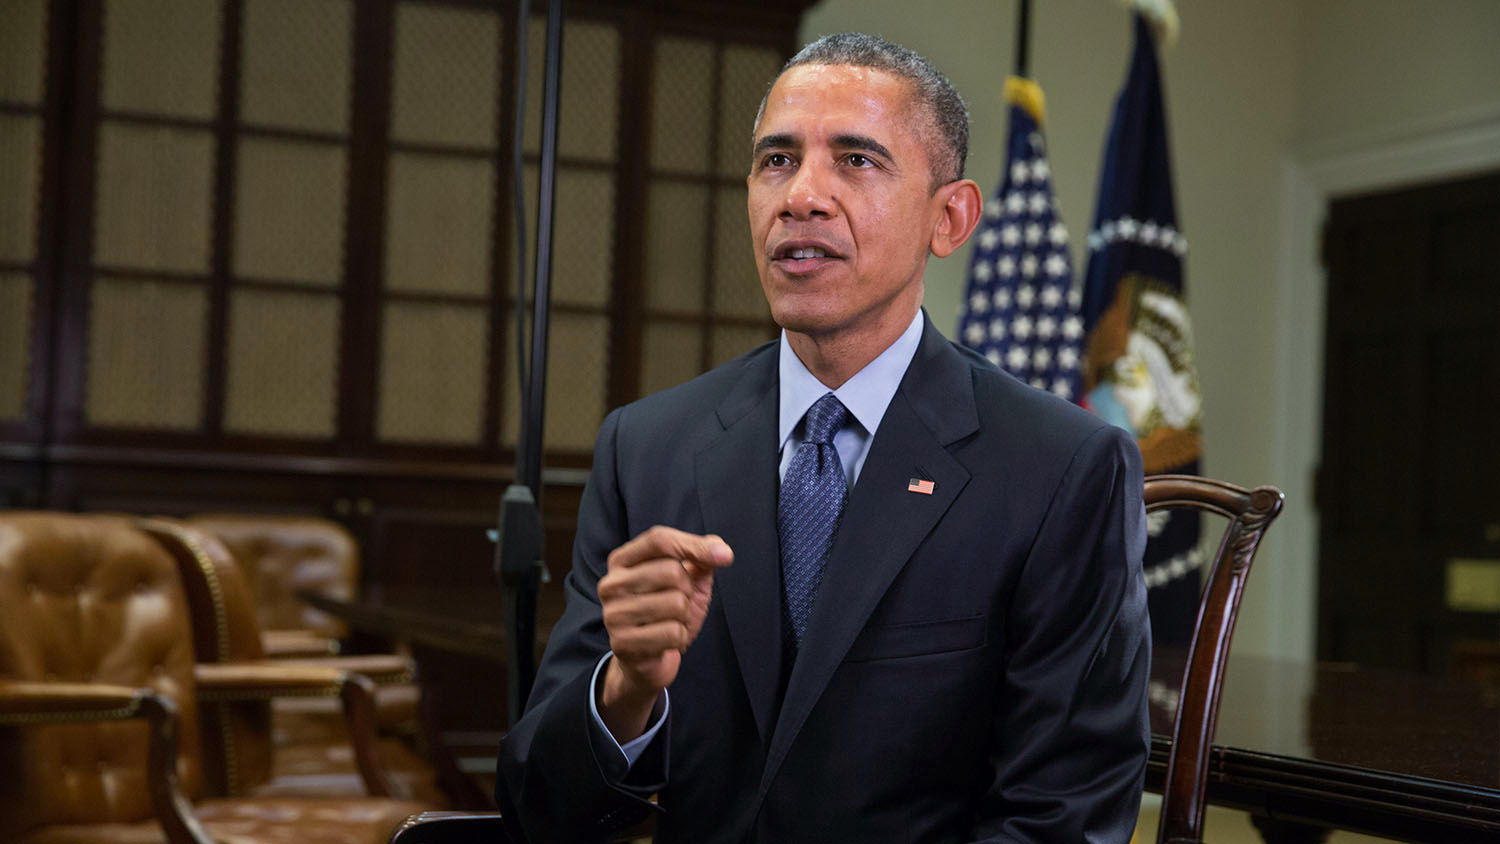 President Obama Records the Weekly Address March 12